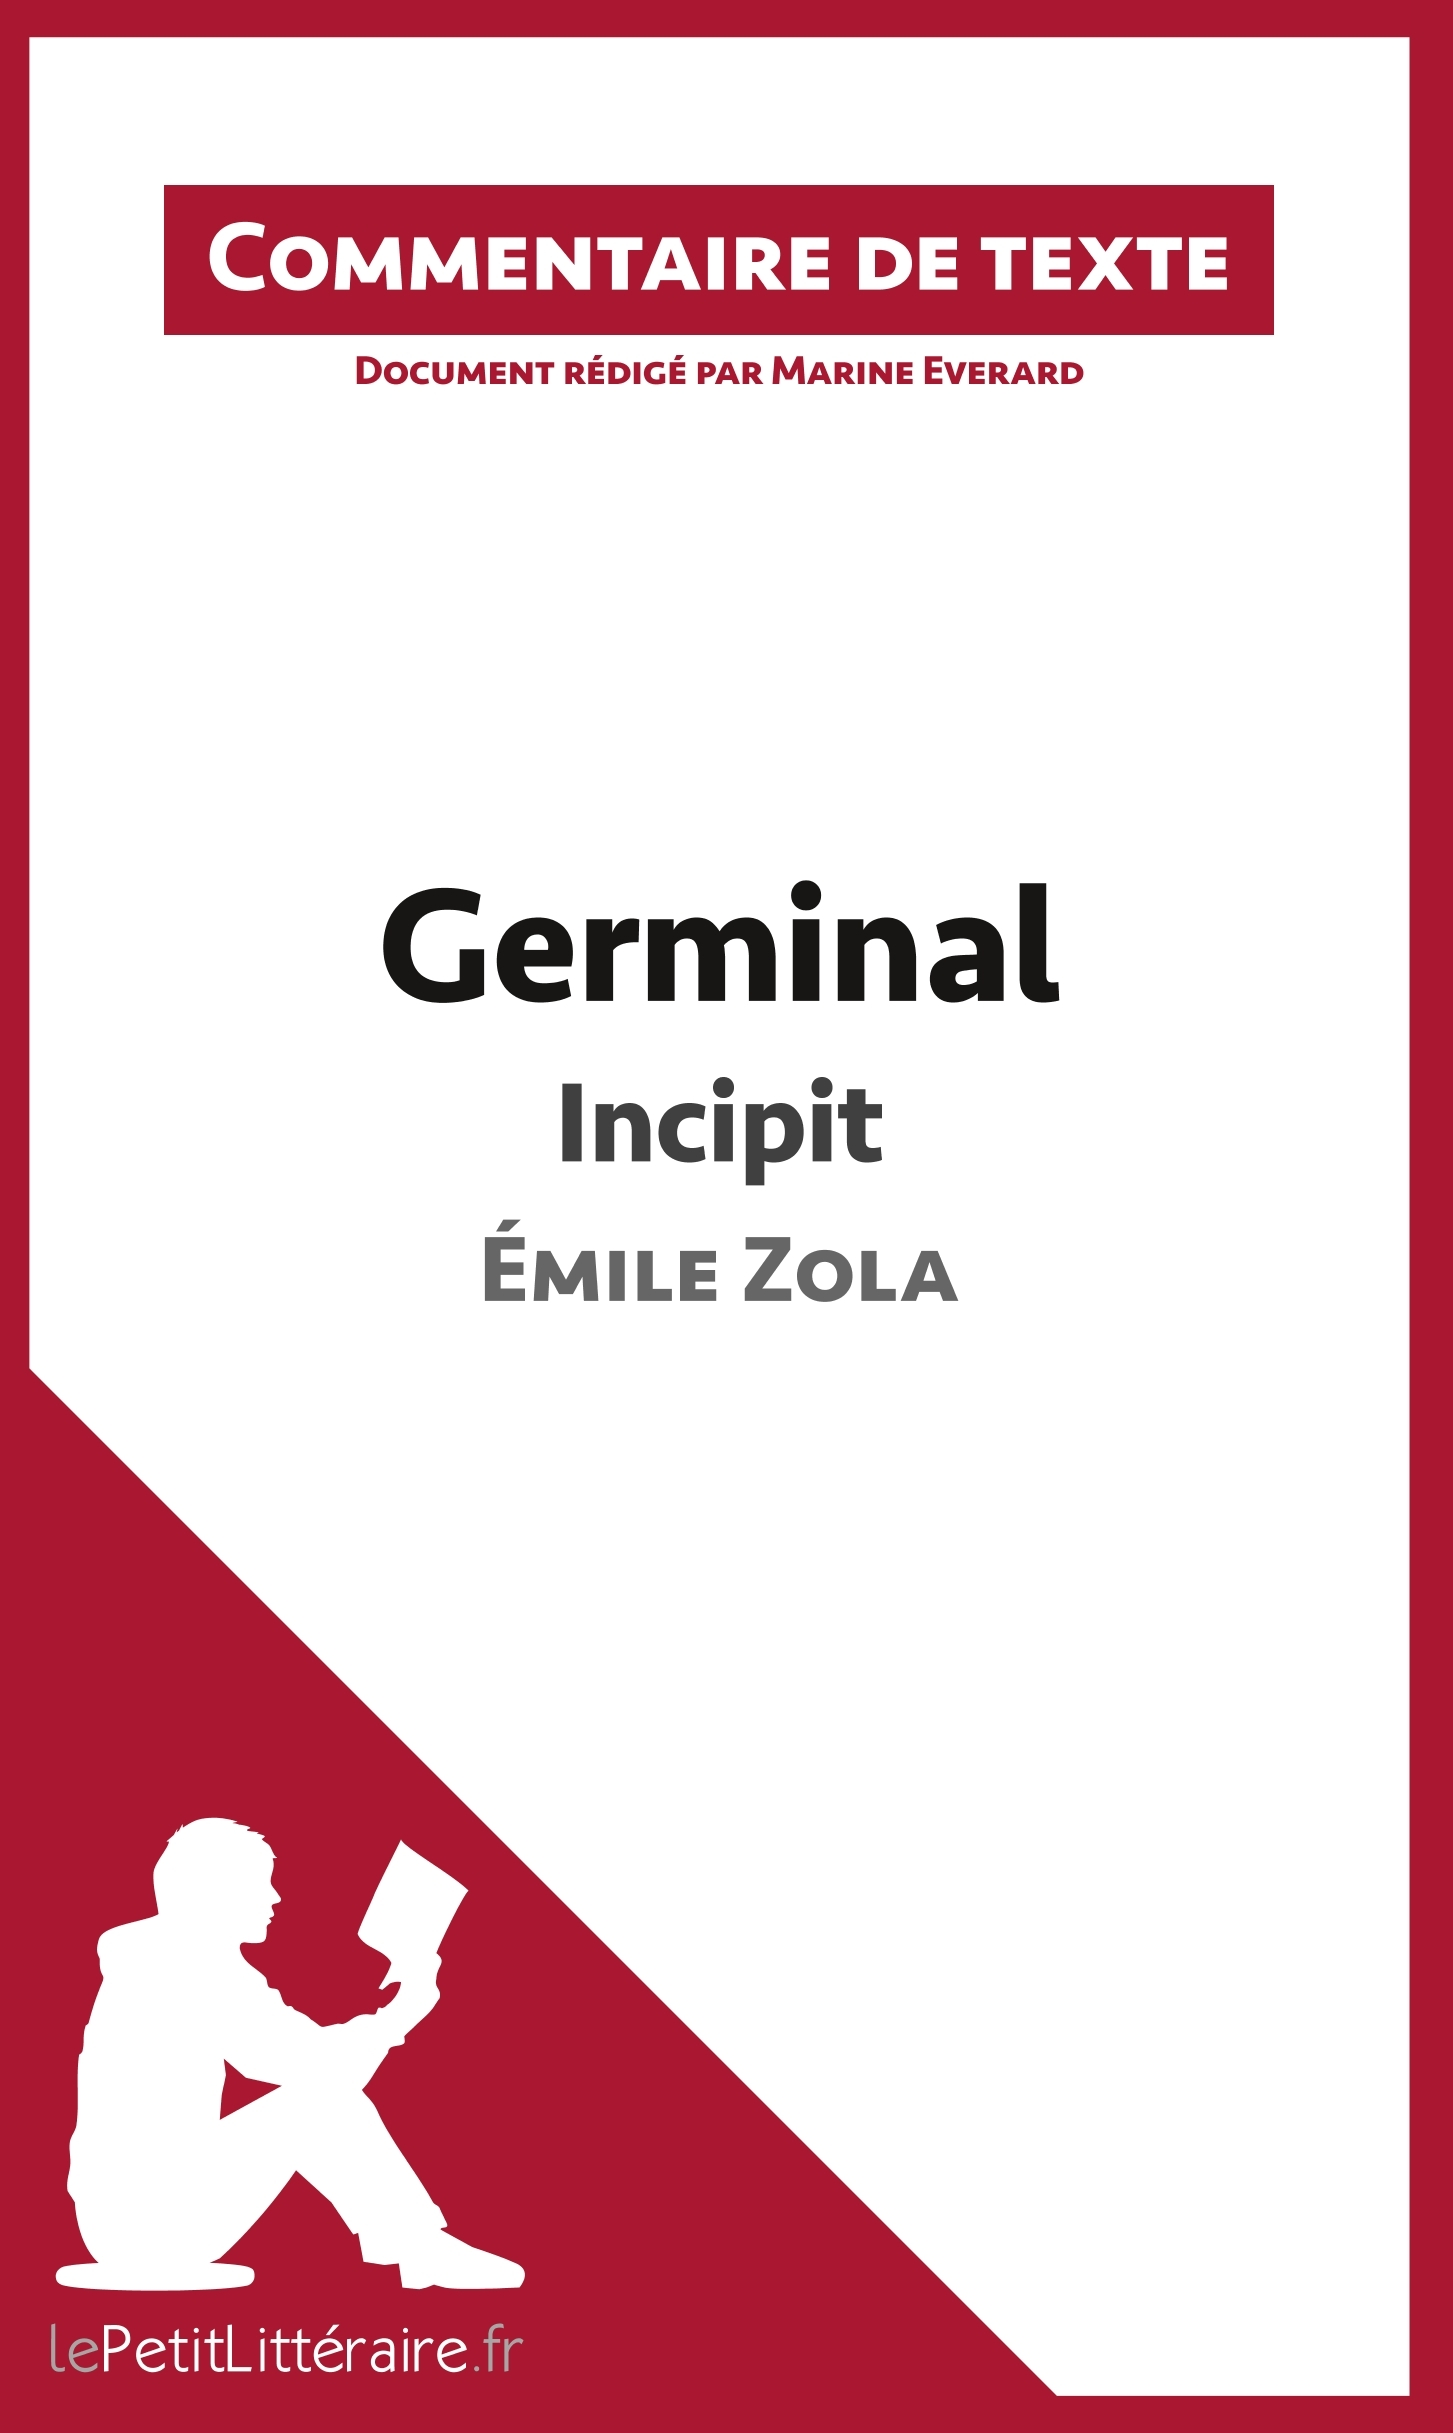 COMMENTAIRE COMPOSE GERMINAL DE ZOLA INCIPIT